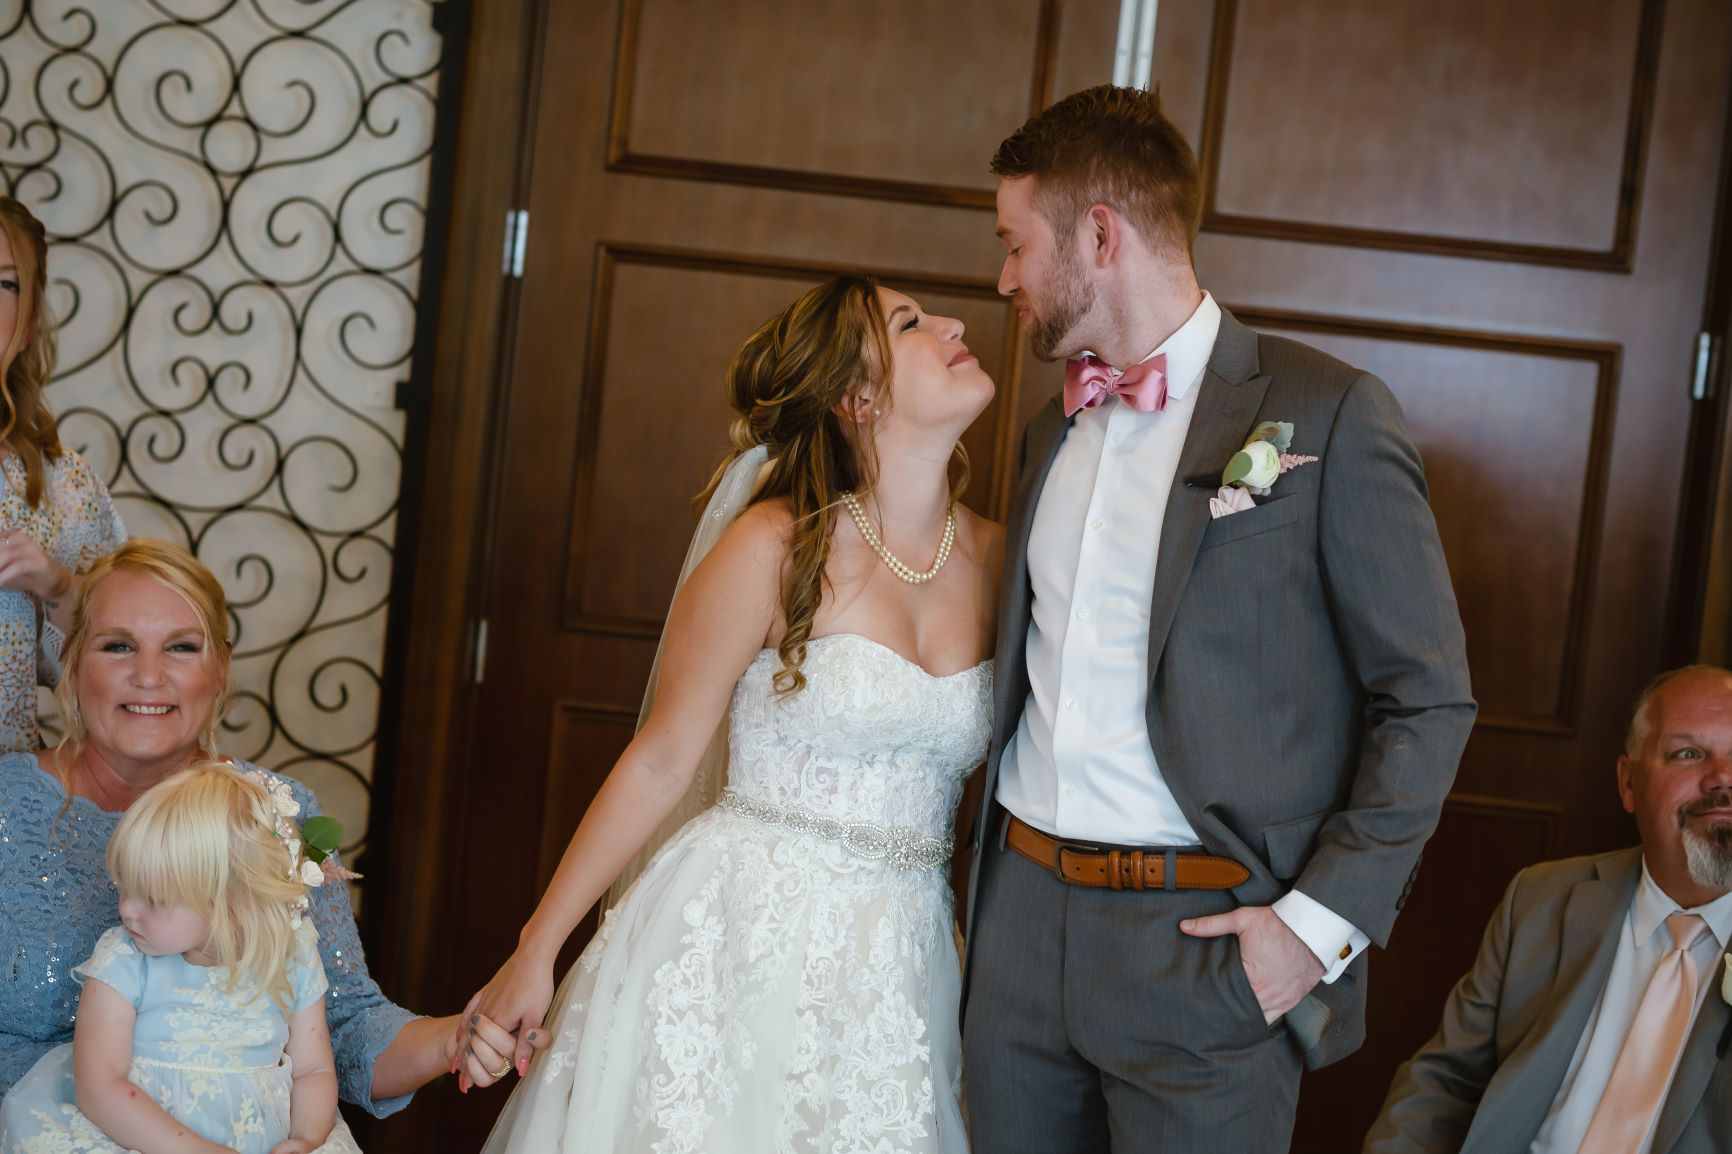 Blush Pink Wedding | The Alfond Inn Wedding of Rebecca and Michael